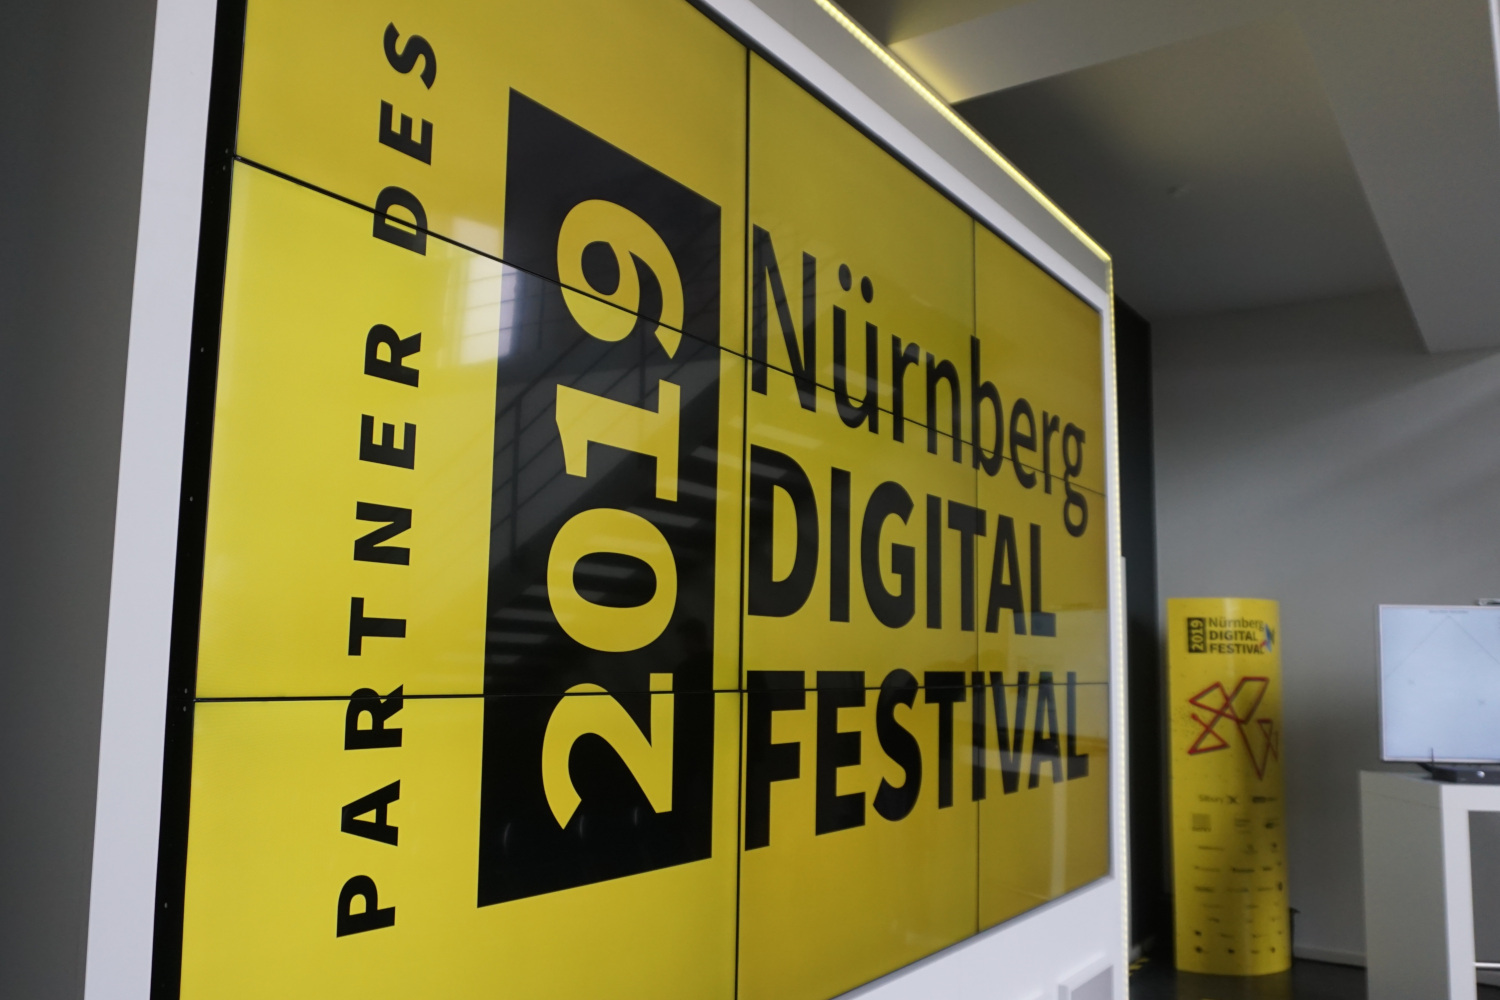 spo-comm and the Nuremberg Digital Festival – A review